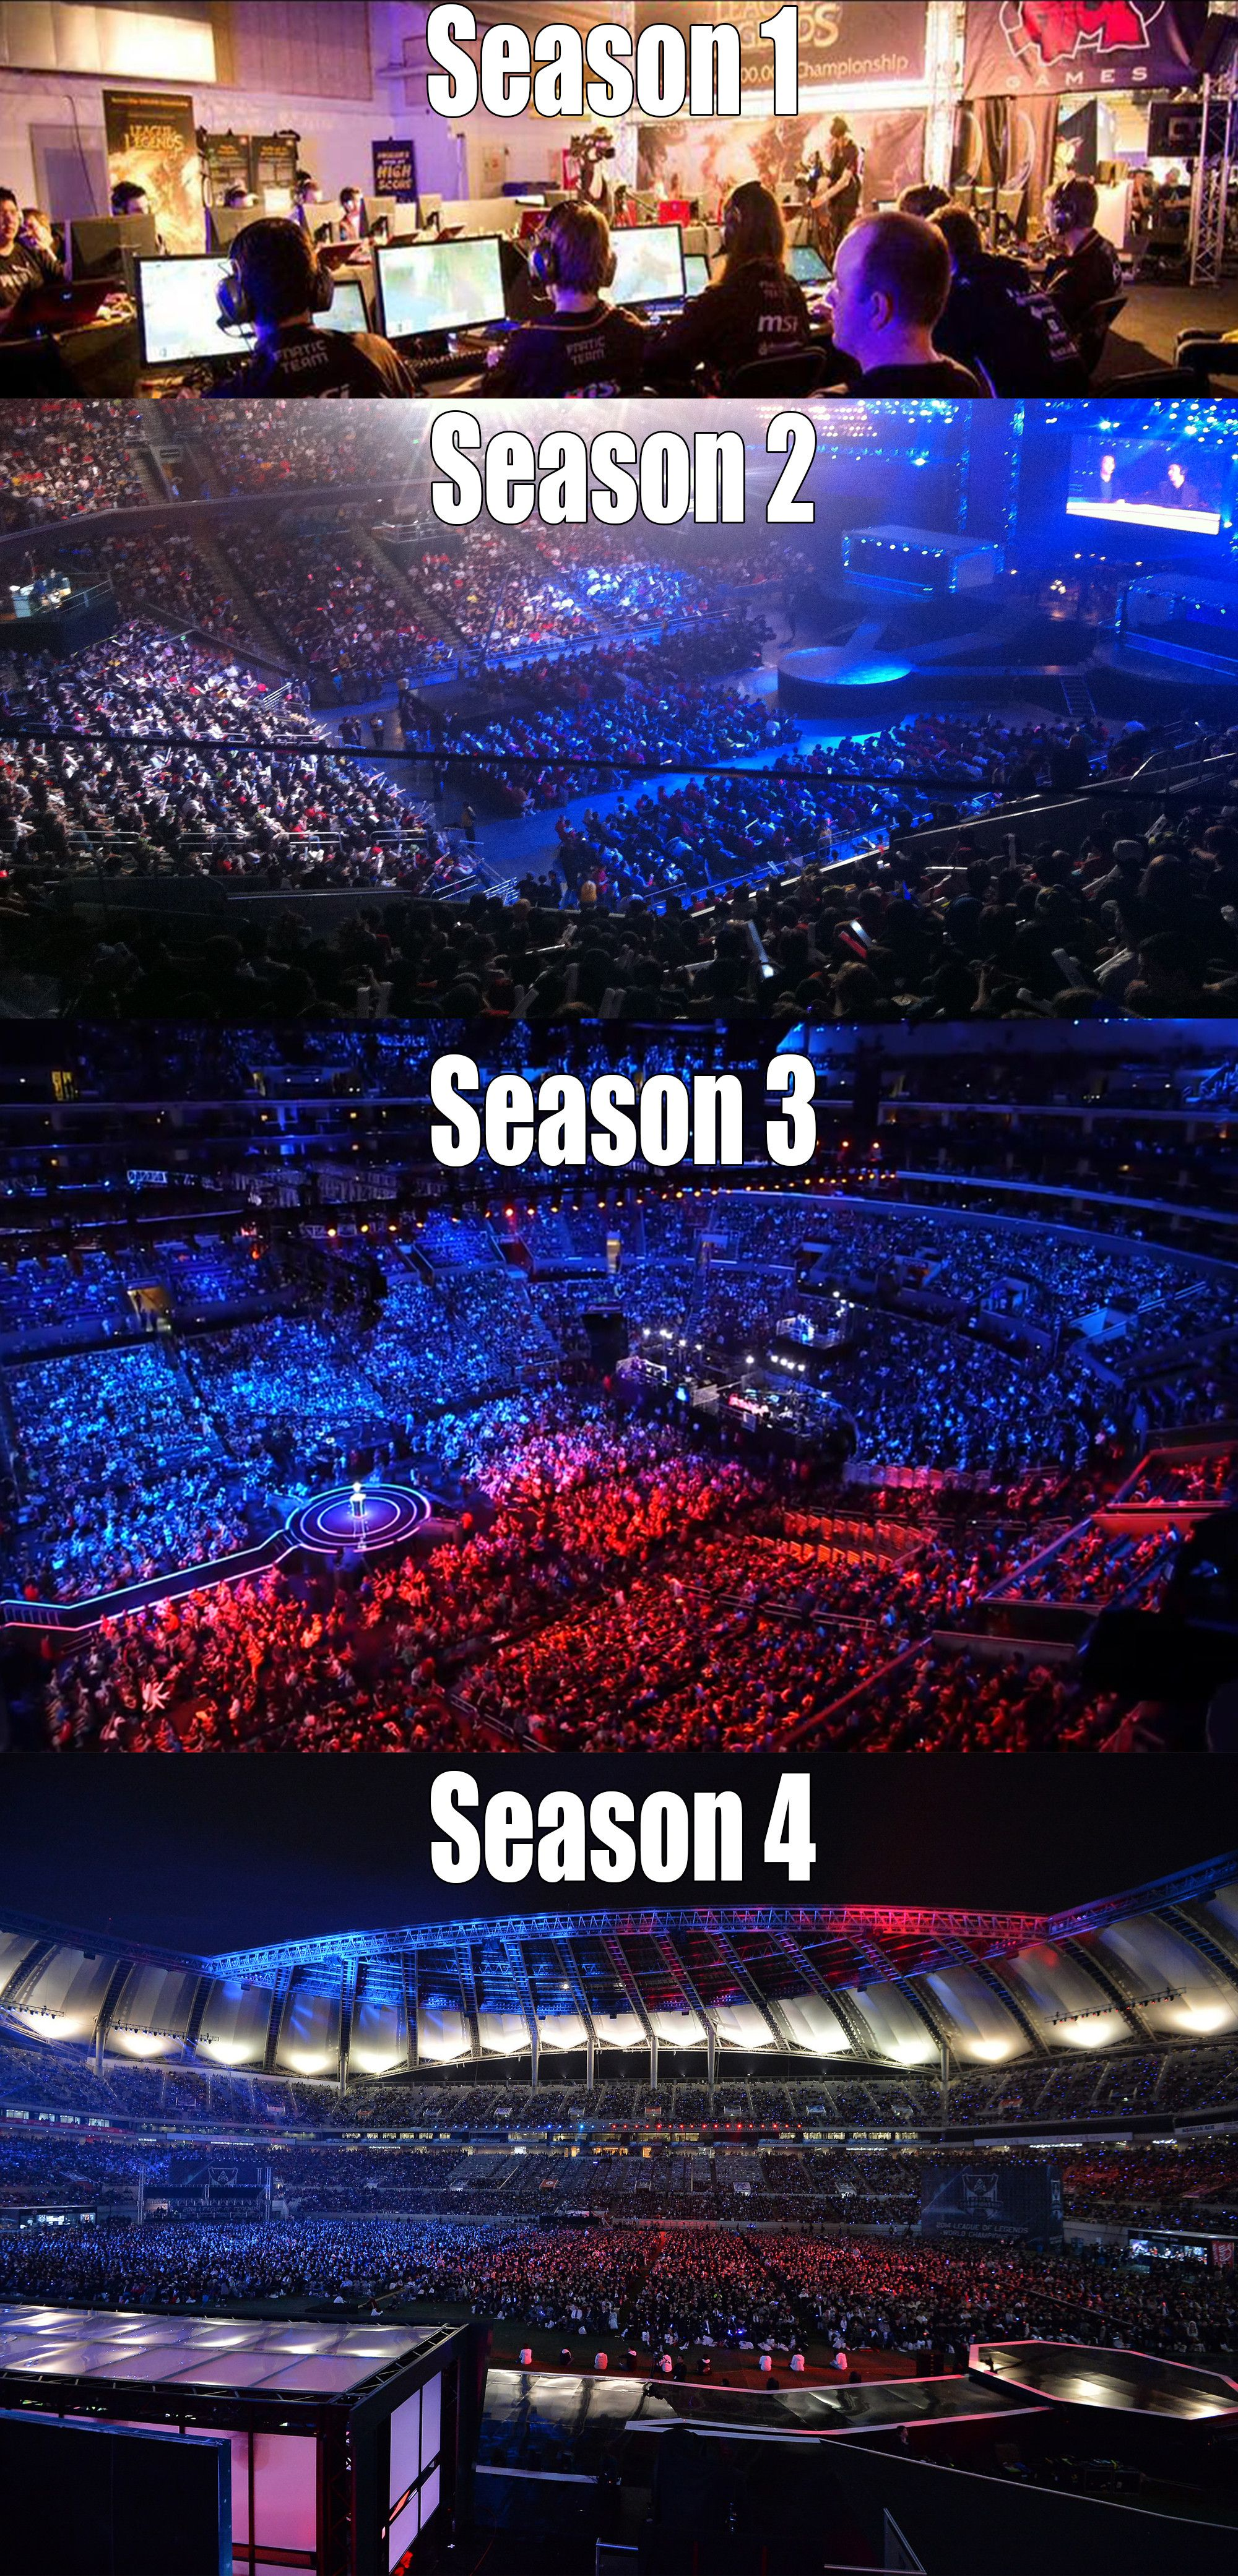 Even If You Don T Care About Games Or Esports This Change In Only Four Years Time Is Staggering Xpost R Leagueoflegends Lol League Of Legends League Of Legends Comic League Of Legends